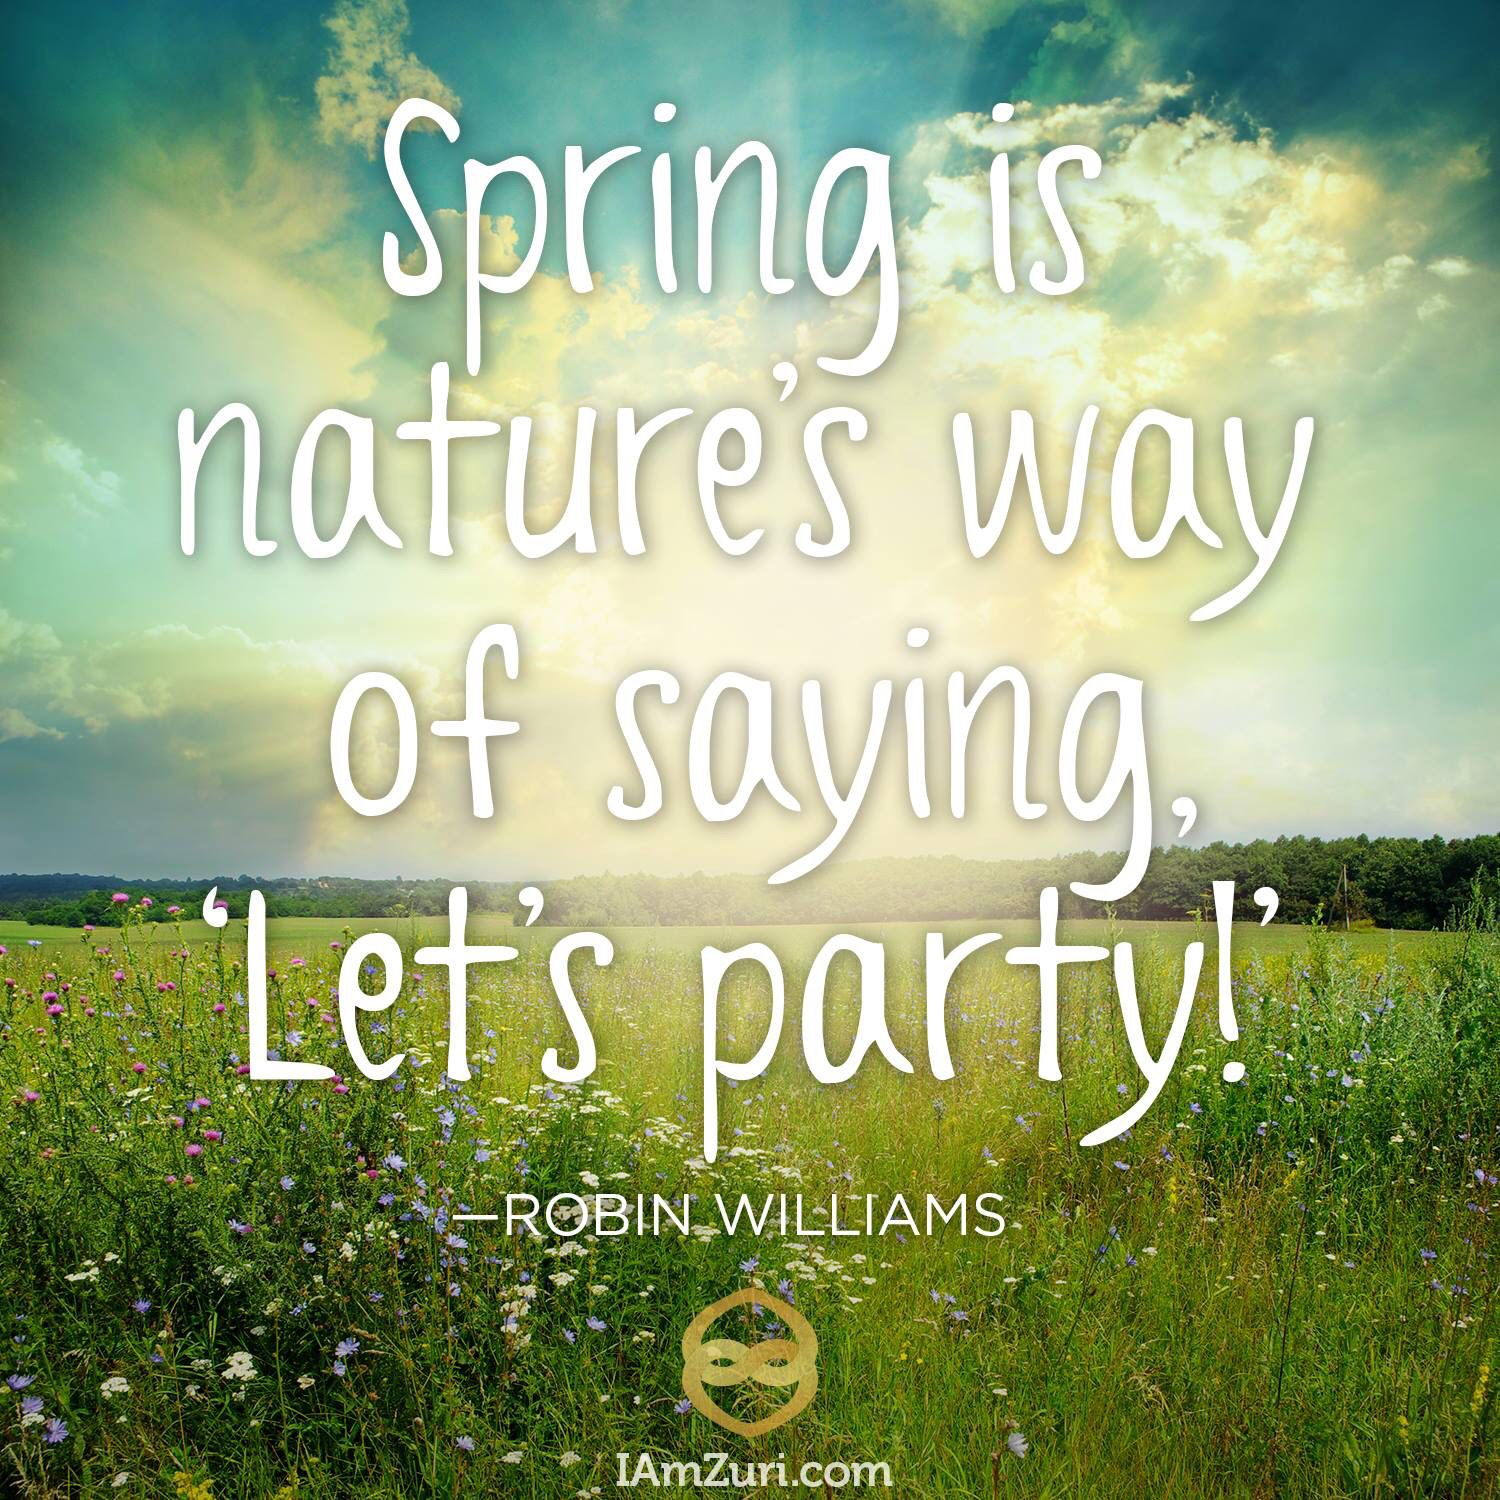 """Did you know the color green instantly sets your body at ease.  It is the easiest color on the eye and can even improve vision. It's no wonder those of us waiting to appear on TV sit in """"green rooms"""" to relax.  Go outside and get in nature, it's SPRING! #springtime #gethealthy #calm #nature #spring #cleanliving #gooutside"""